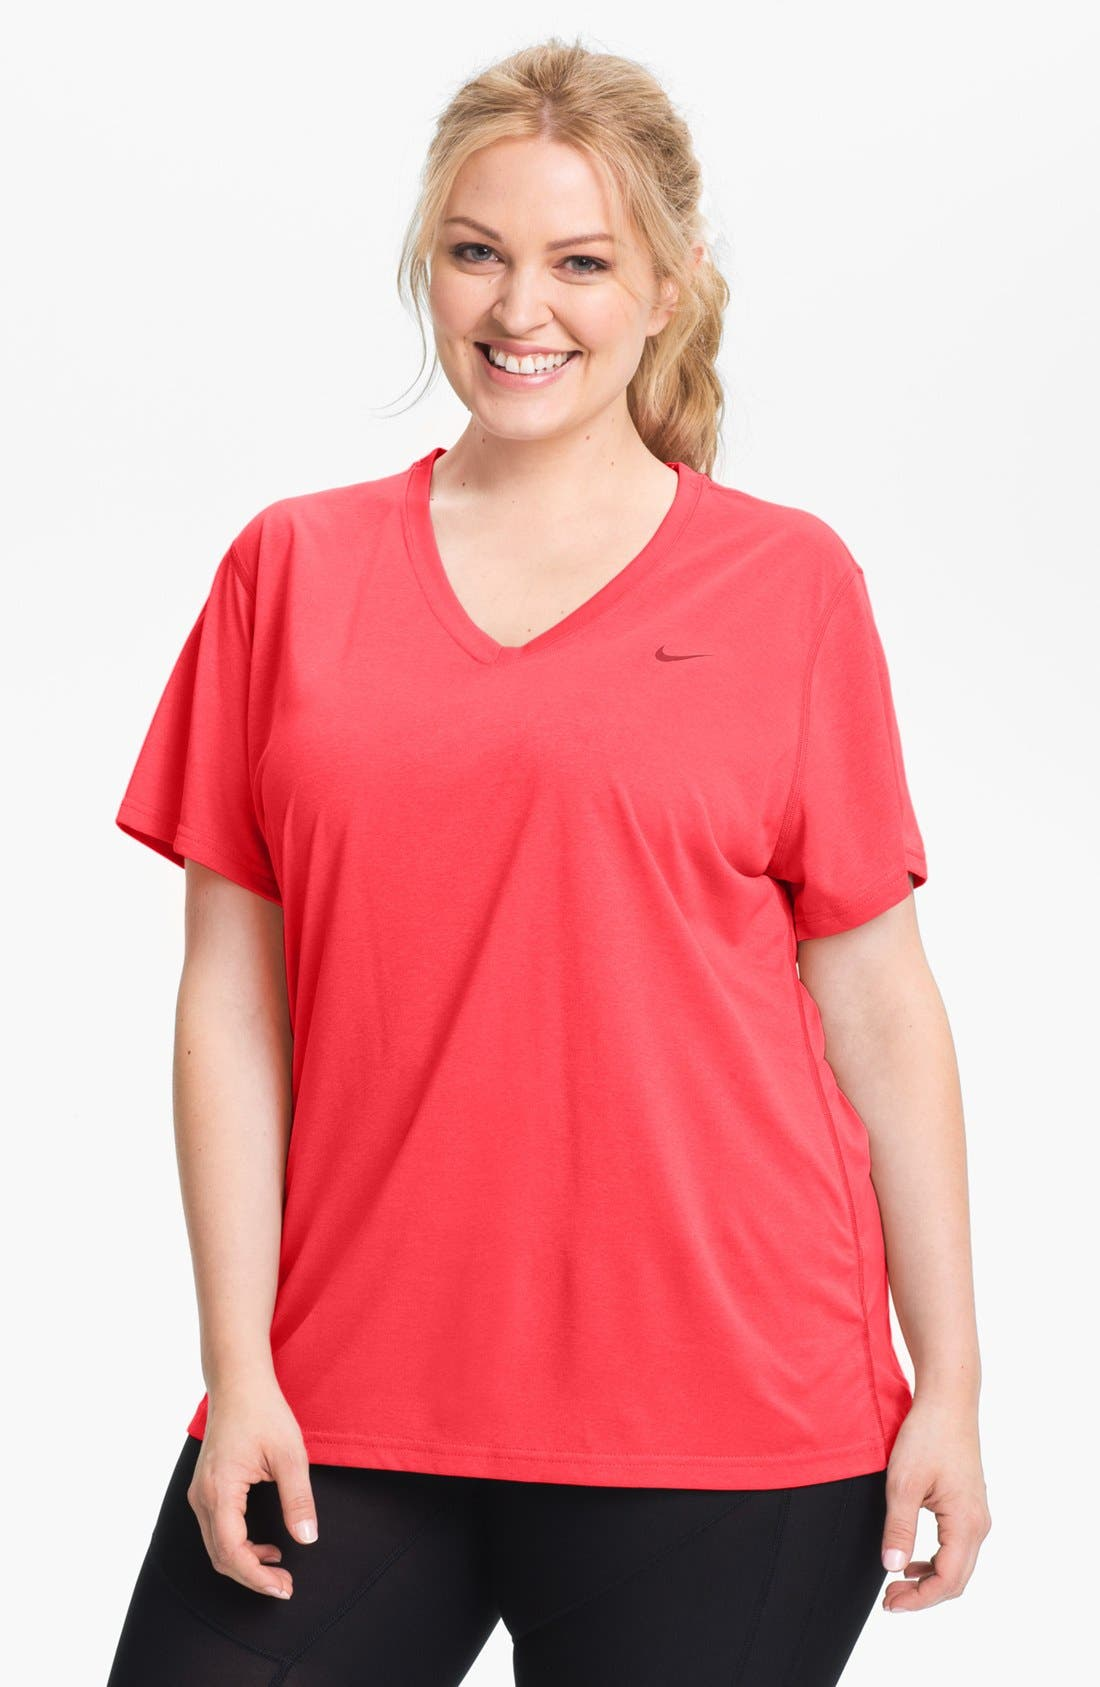 Alternate Image 1 Selected - Nike 'Legend' V-Neck Tee (Plus Size)